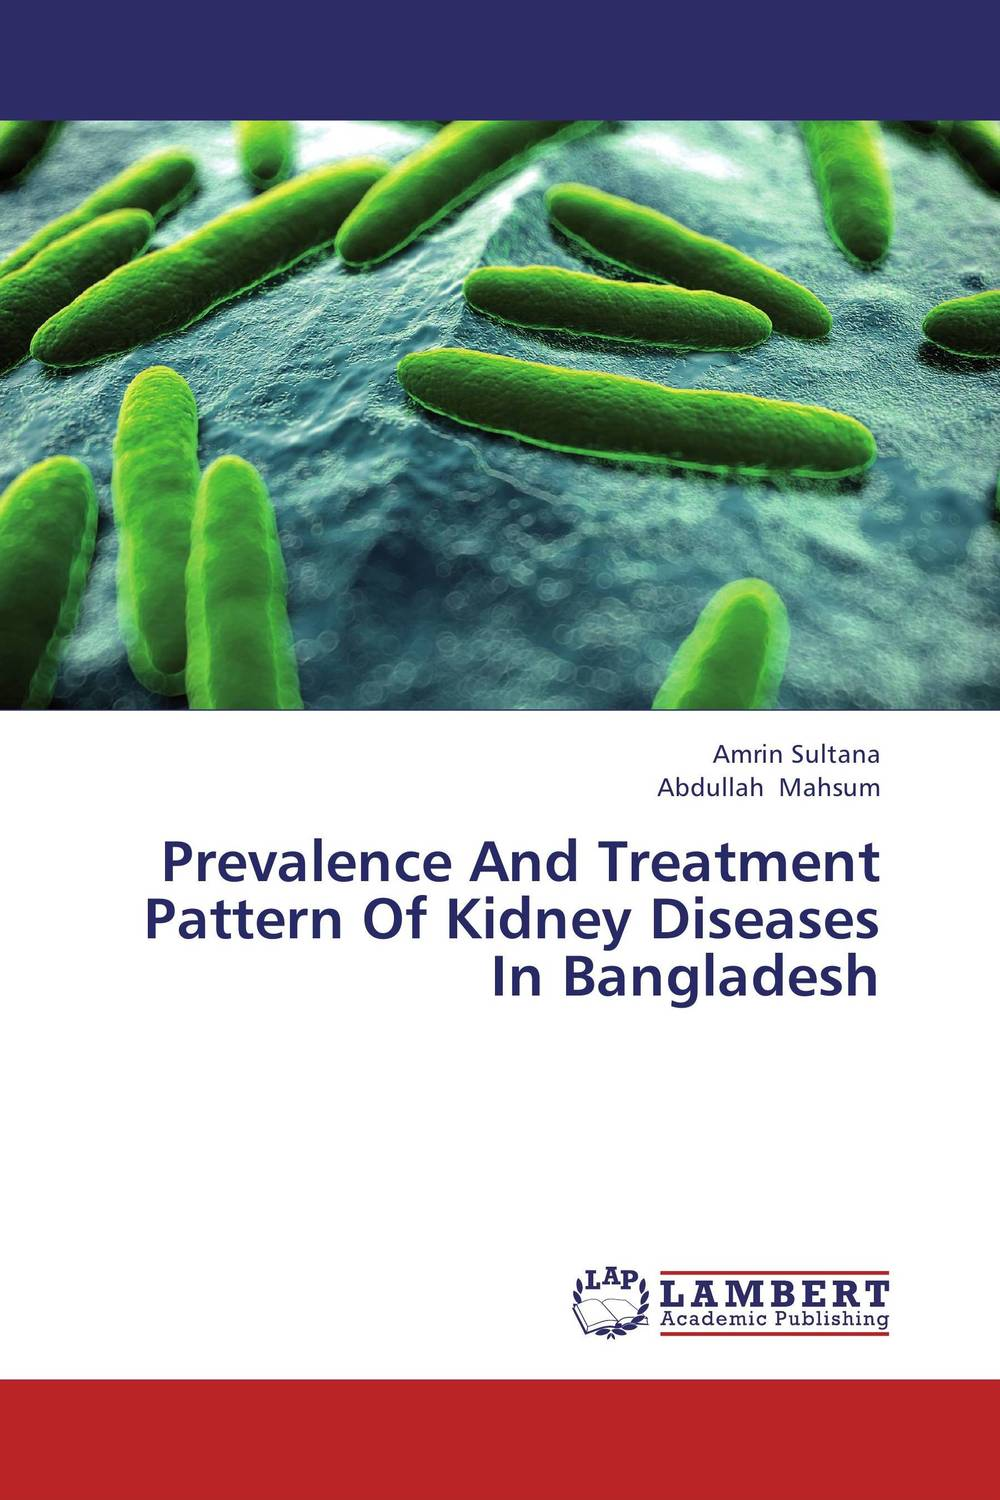 Prevalence And Treatment Pattern Of Kidney Diseases In Bangladesh seduced by death – doctors patients